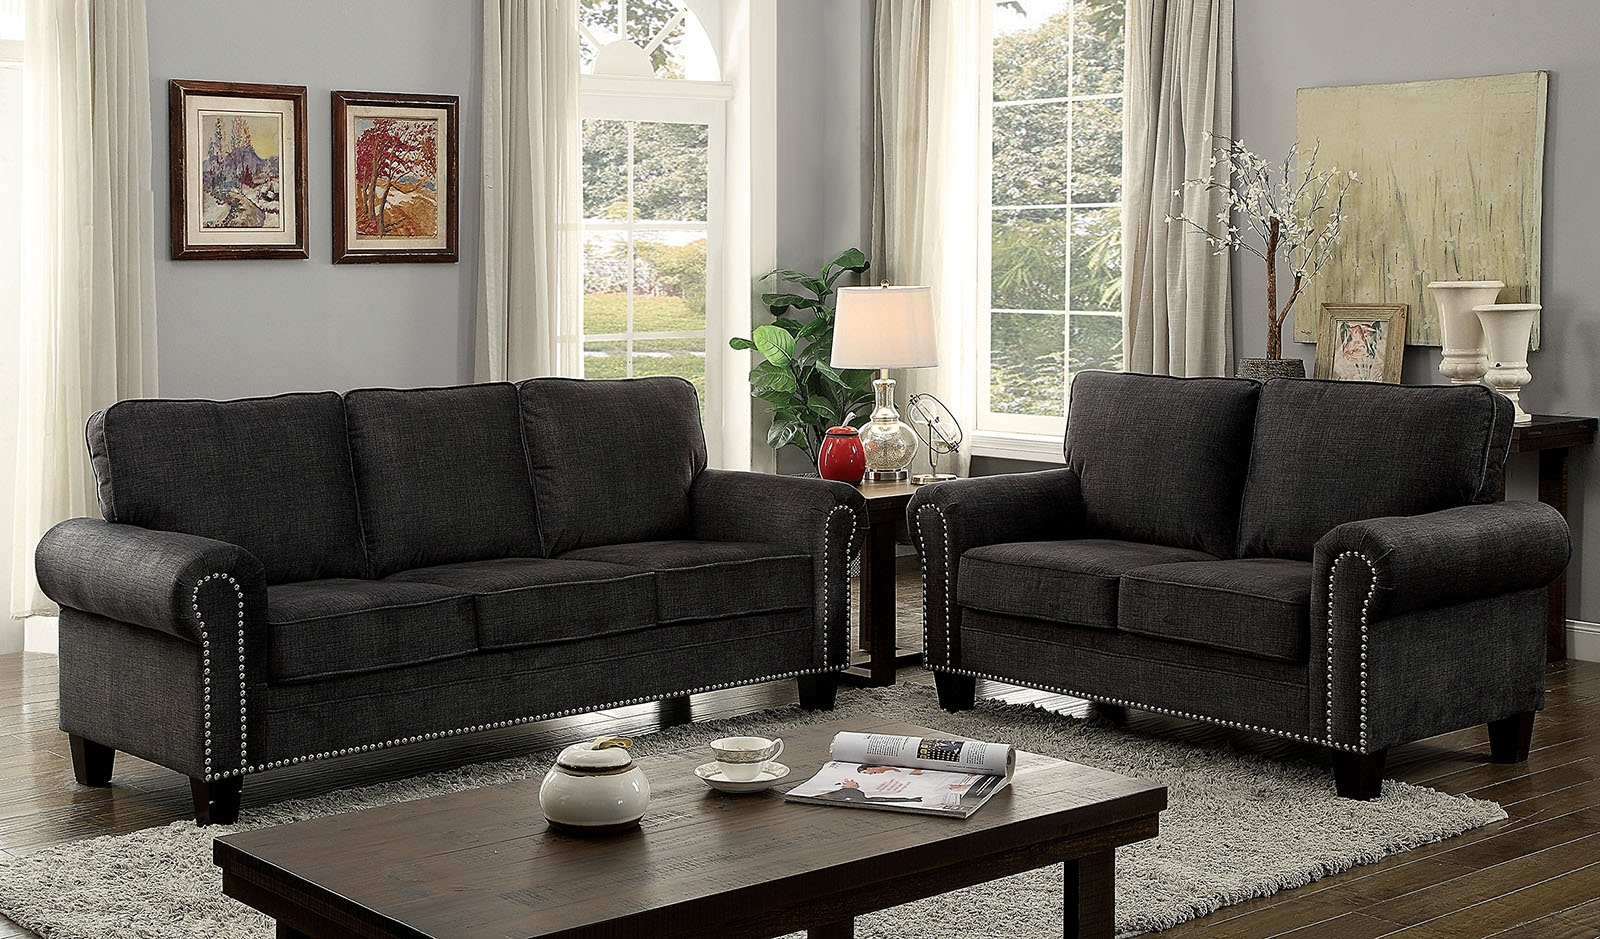 Most Recently Released Elwick Dark Gray Fabric Sofa Loveseat Set W/ Rolled Arms Intended For Fabric Sofas (View 17 of 20)